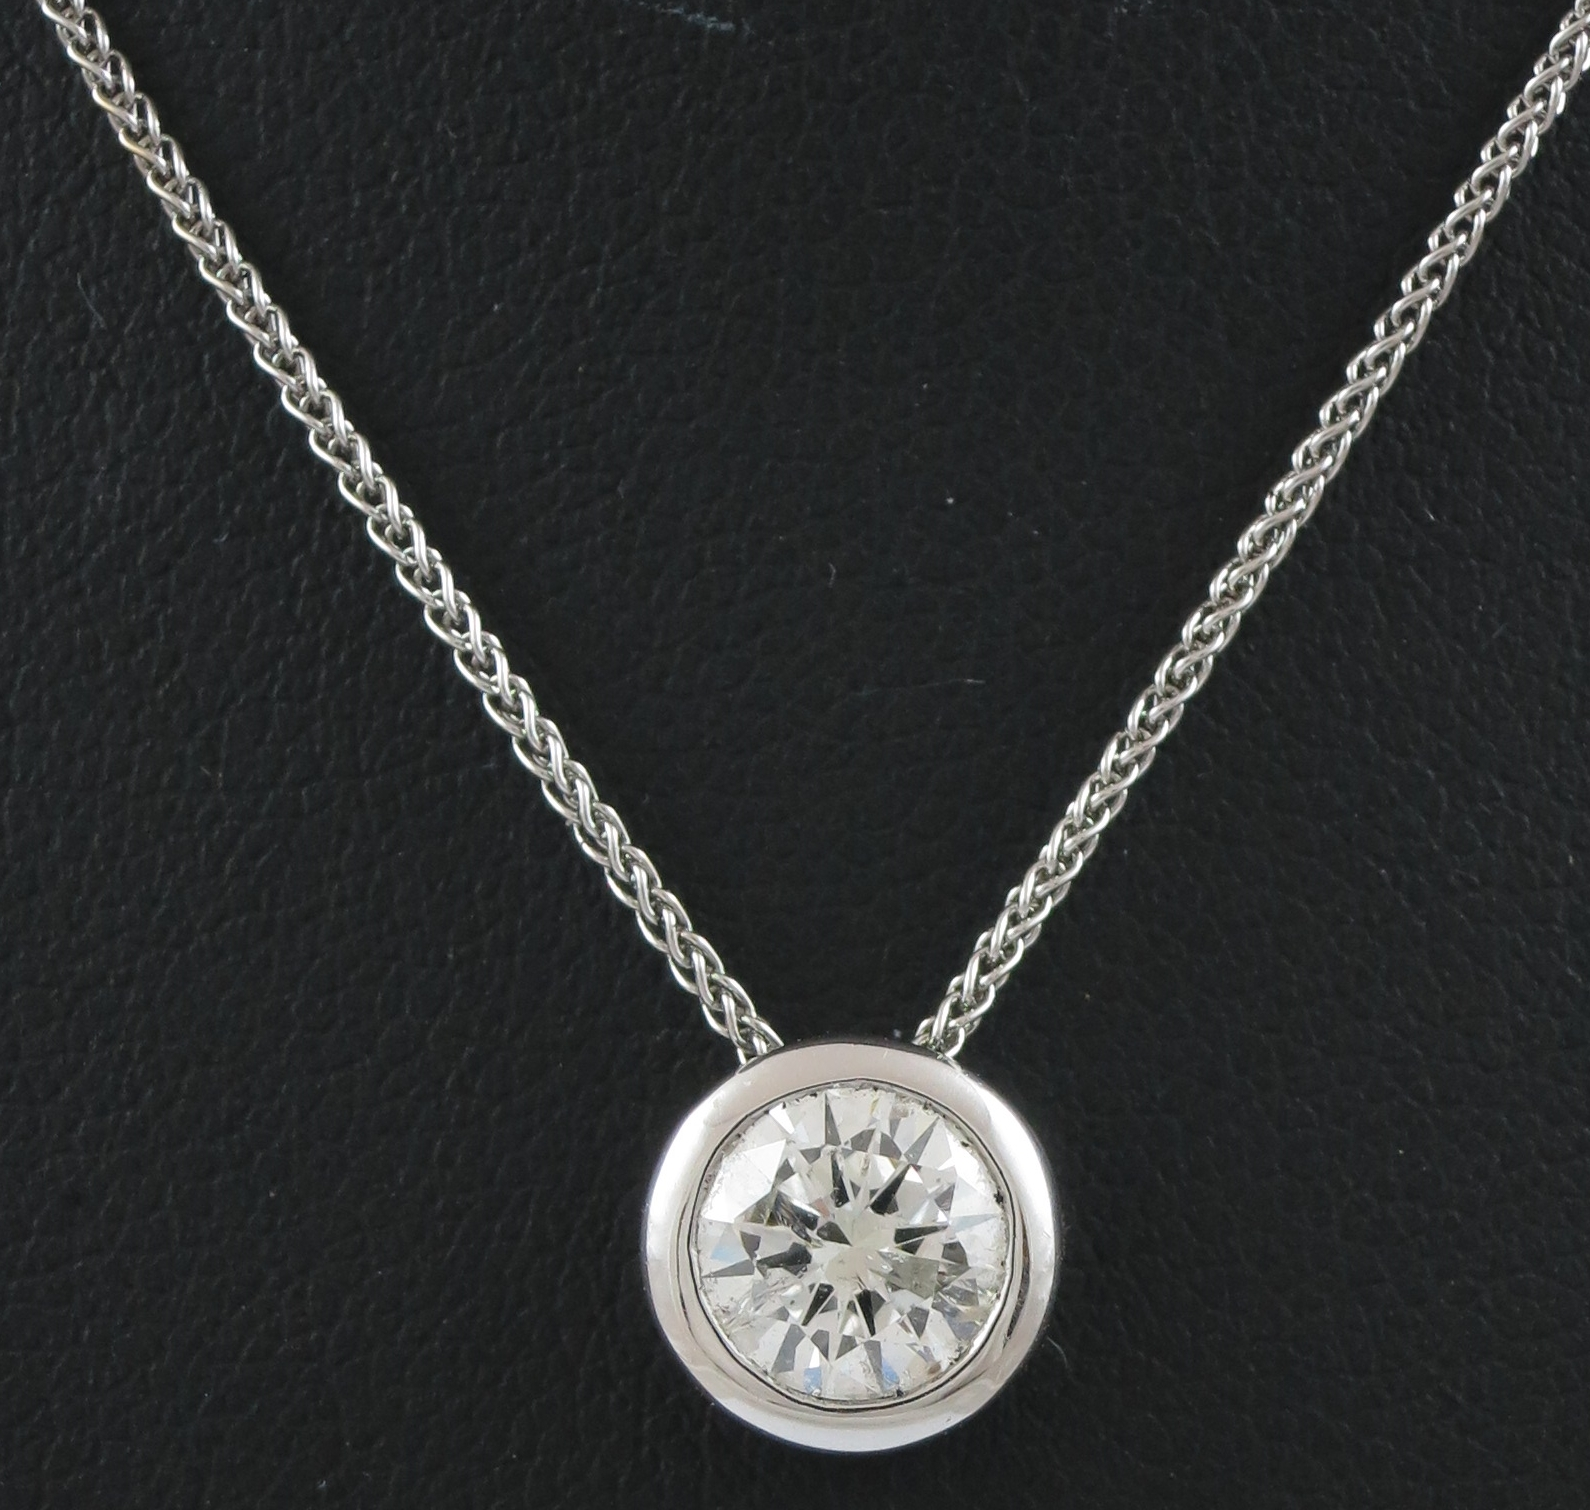 Diamond Solitaire Pendant and Chain.